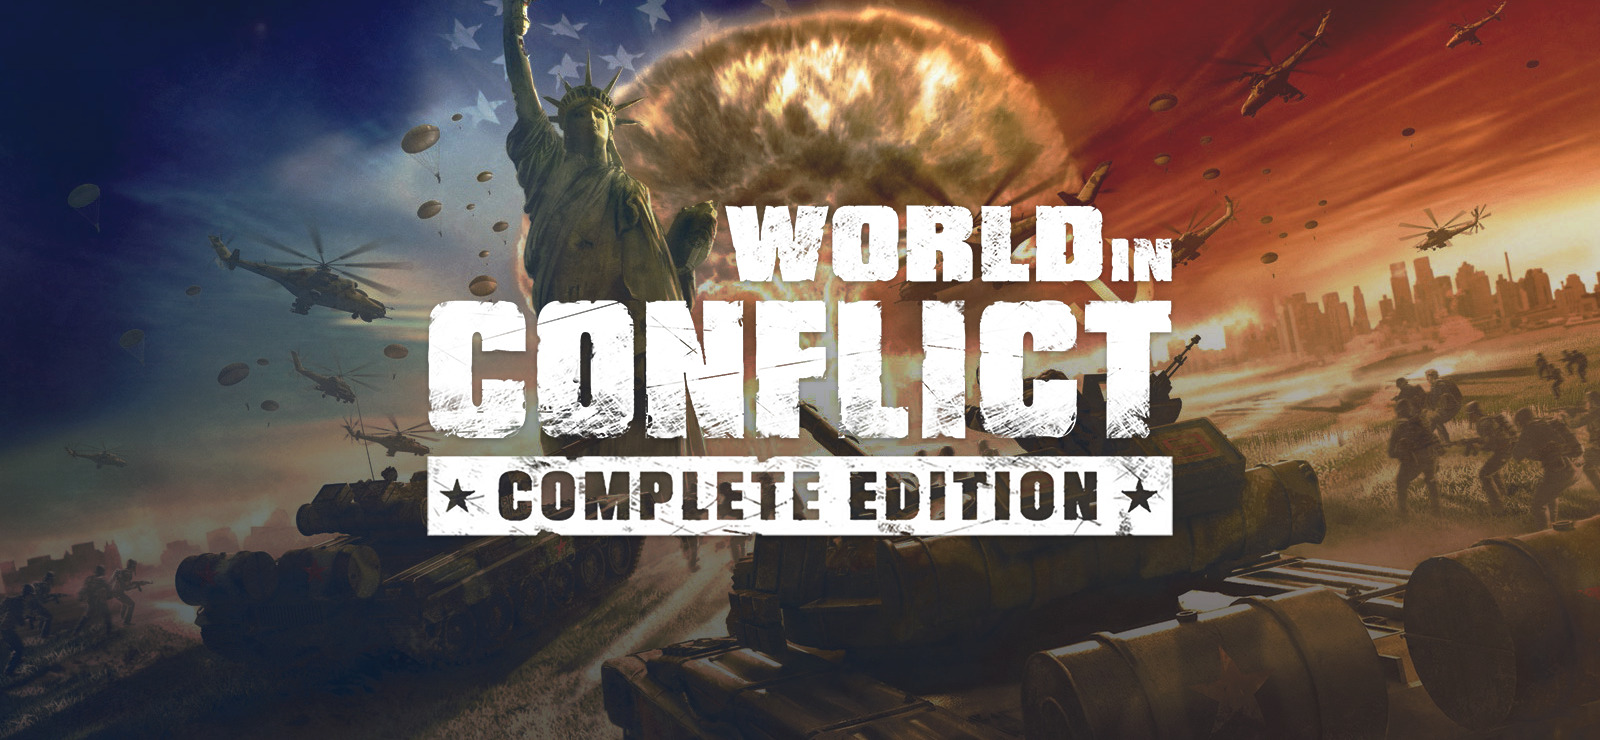 ubisoft: World in Conflict Complete Edition